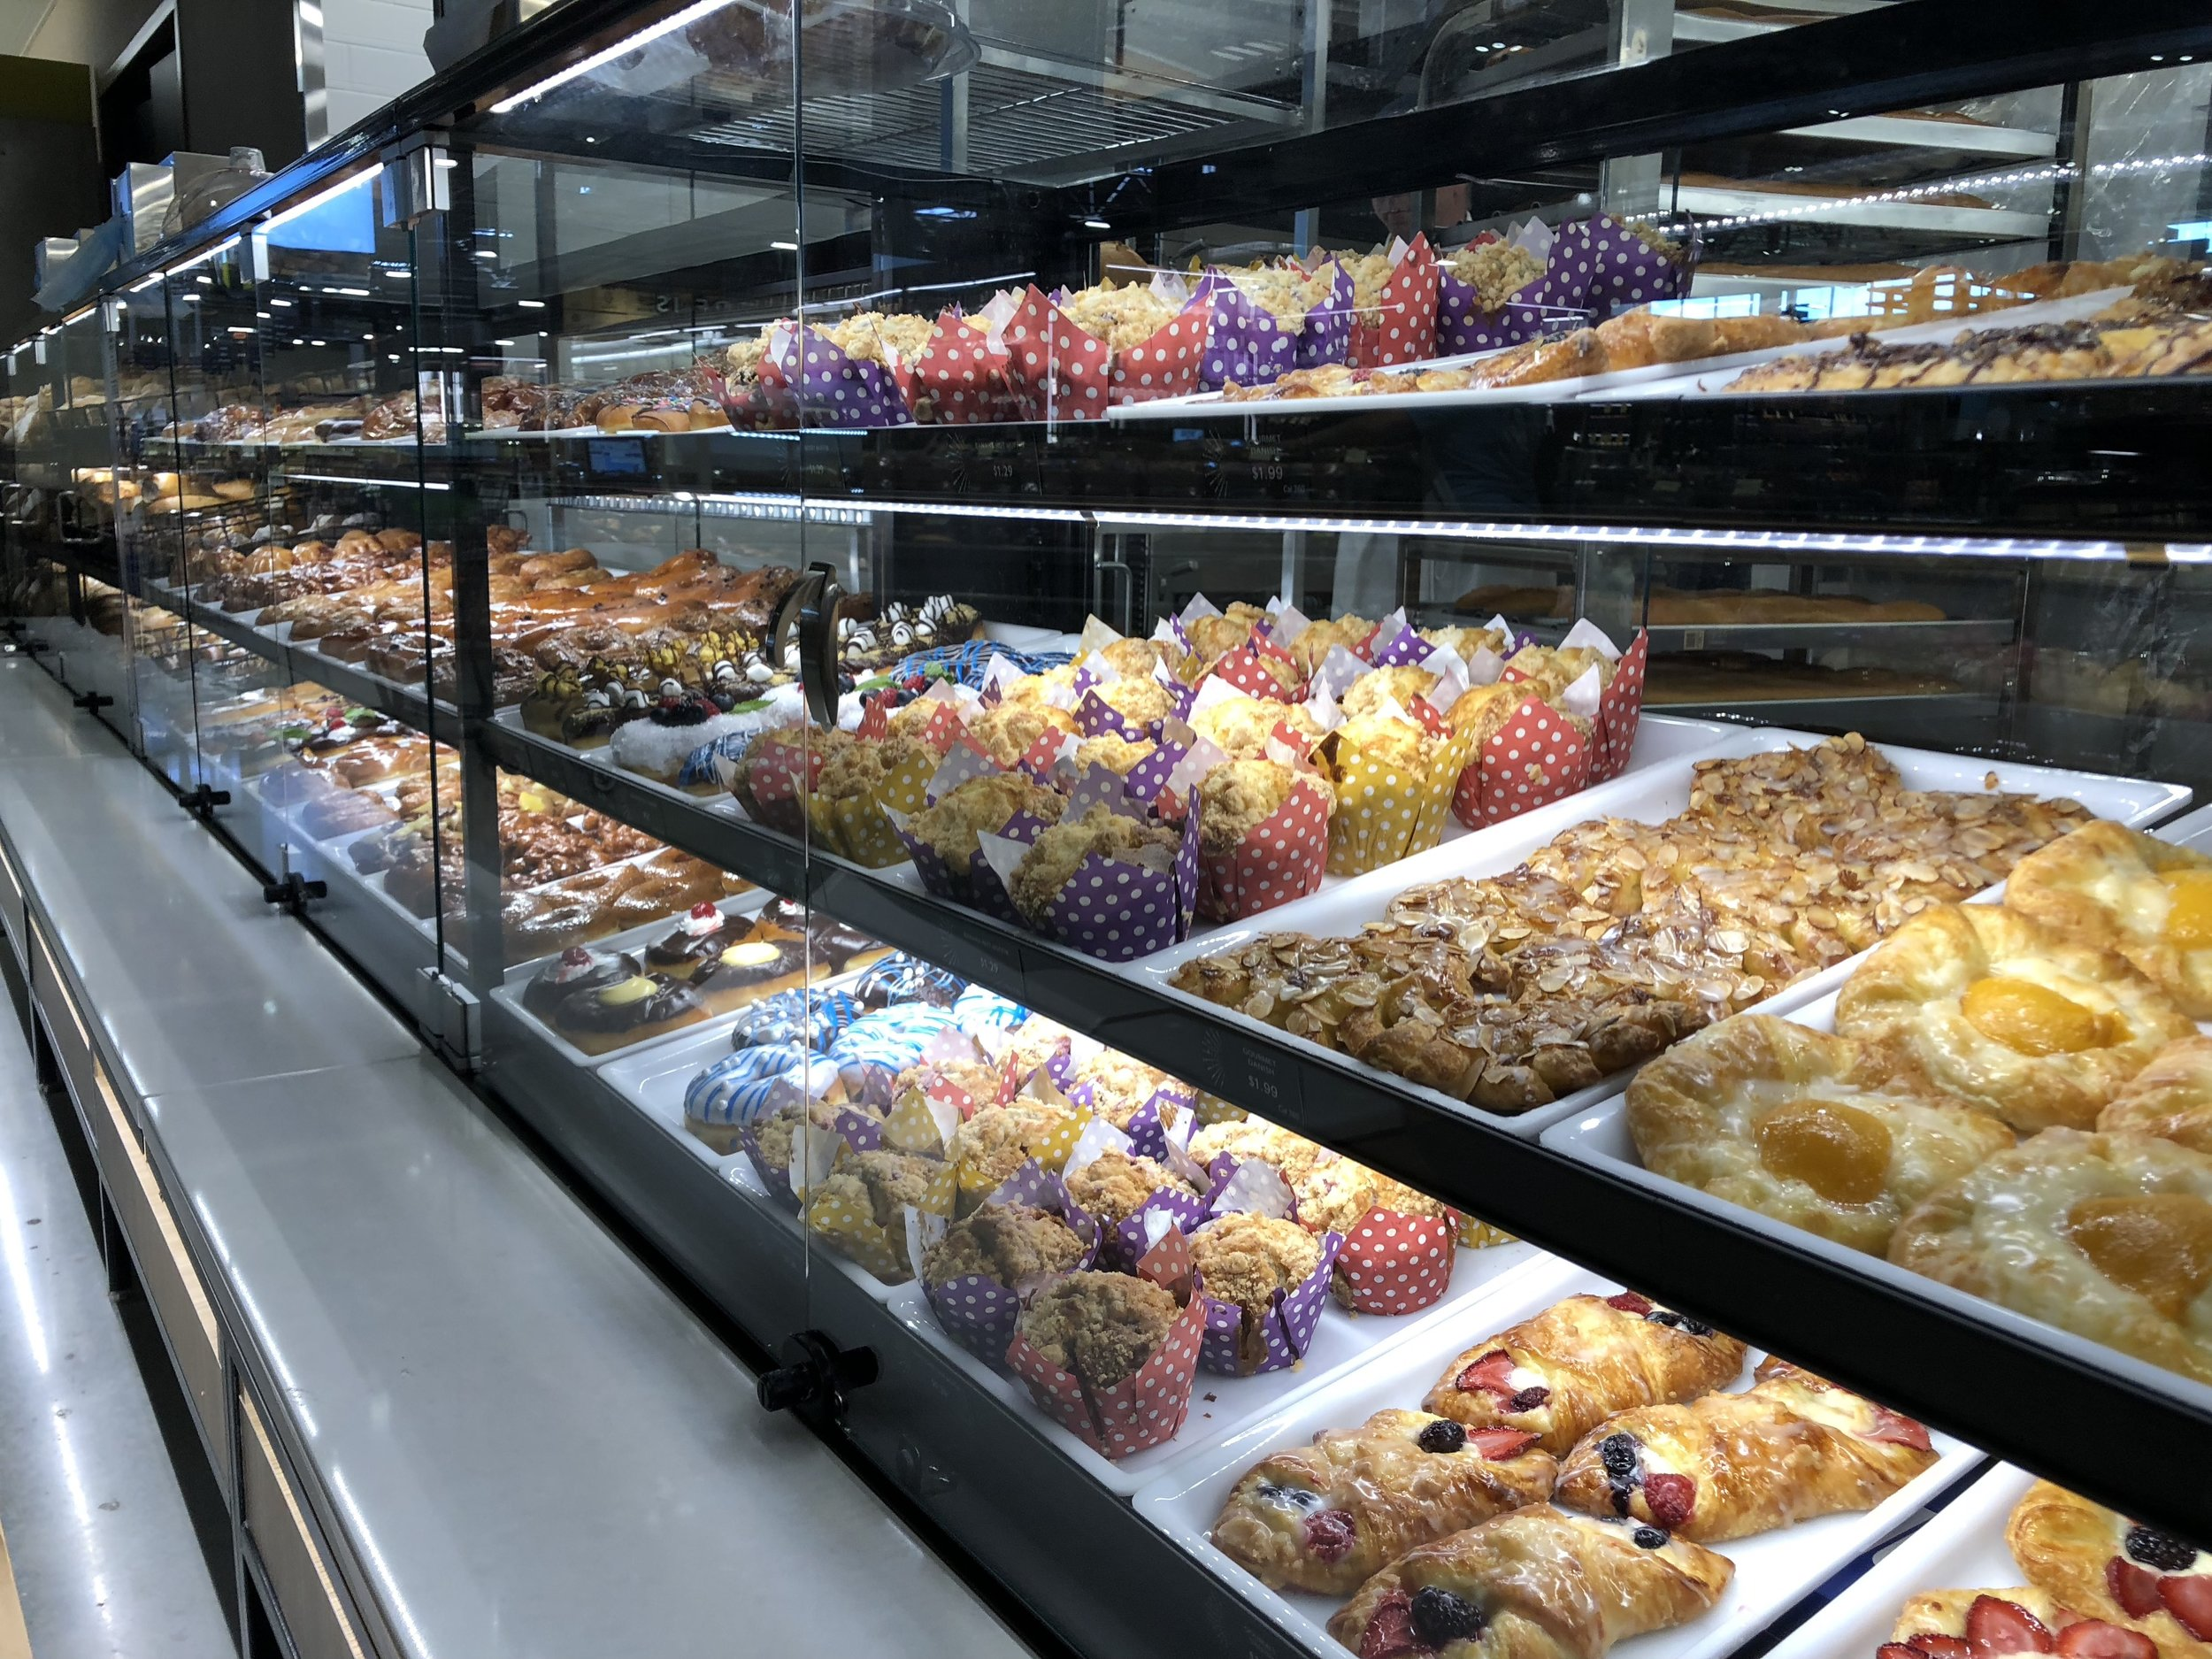 Donut and pastry cases